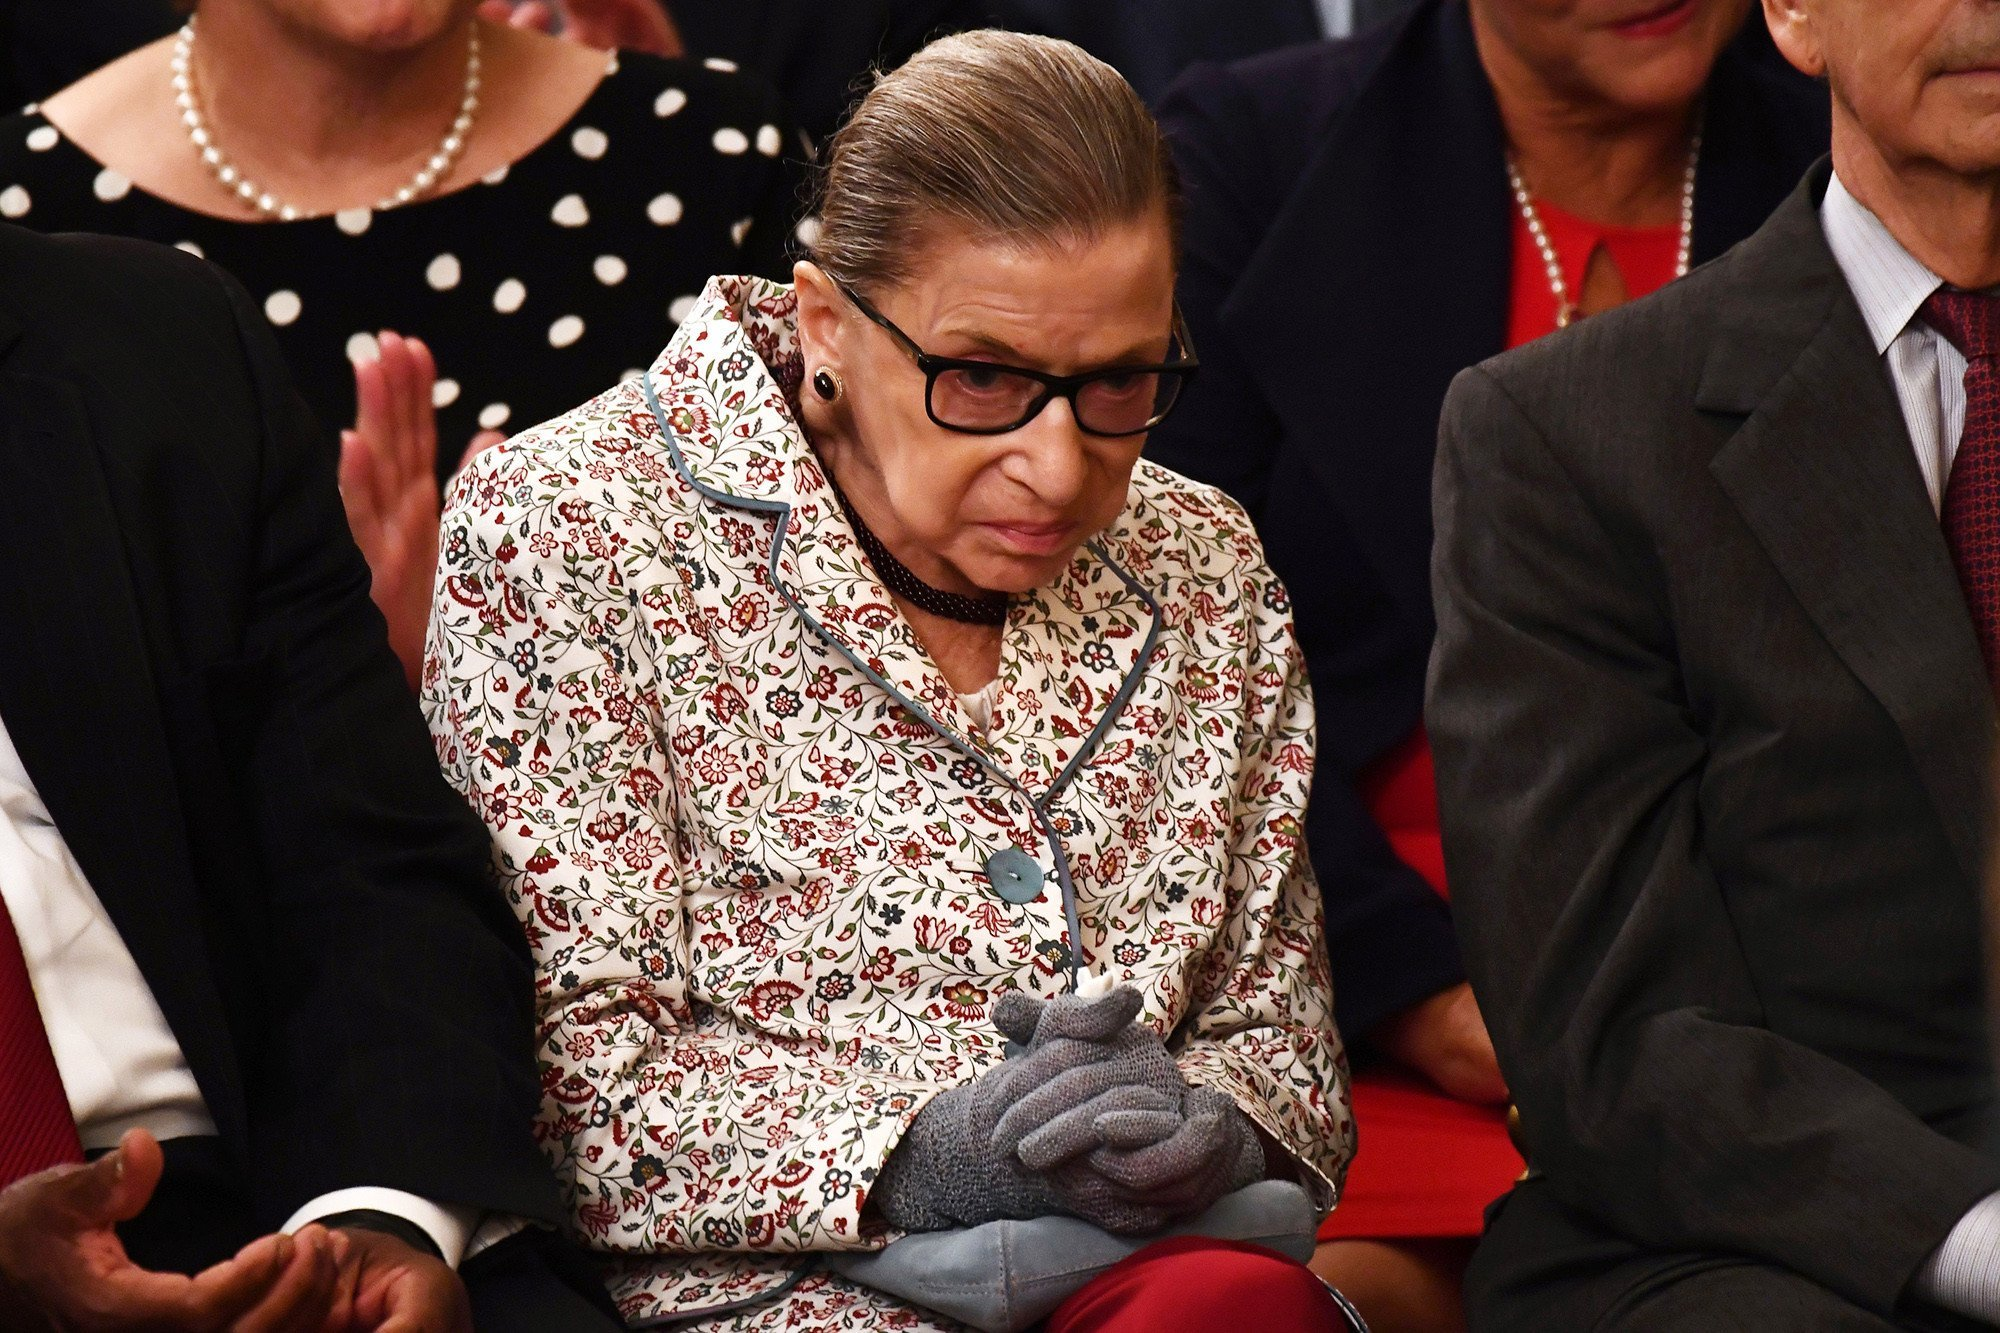 Ruth Bader Ginsburg misses third straight day on the bench